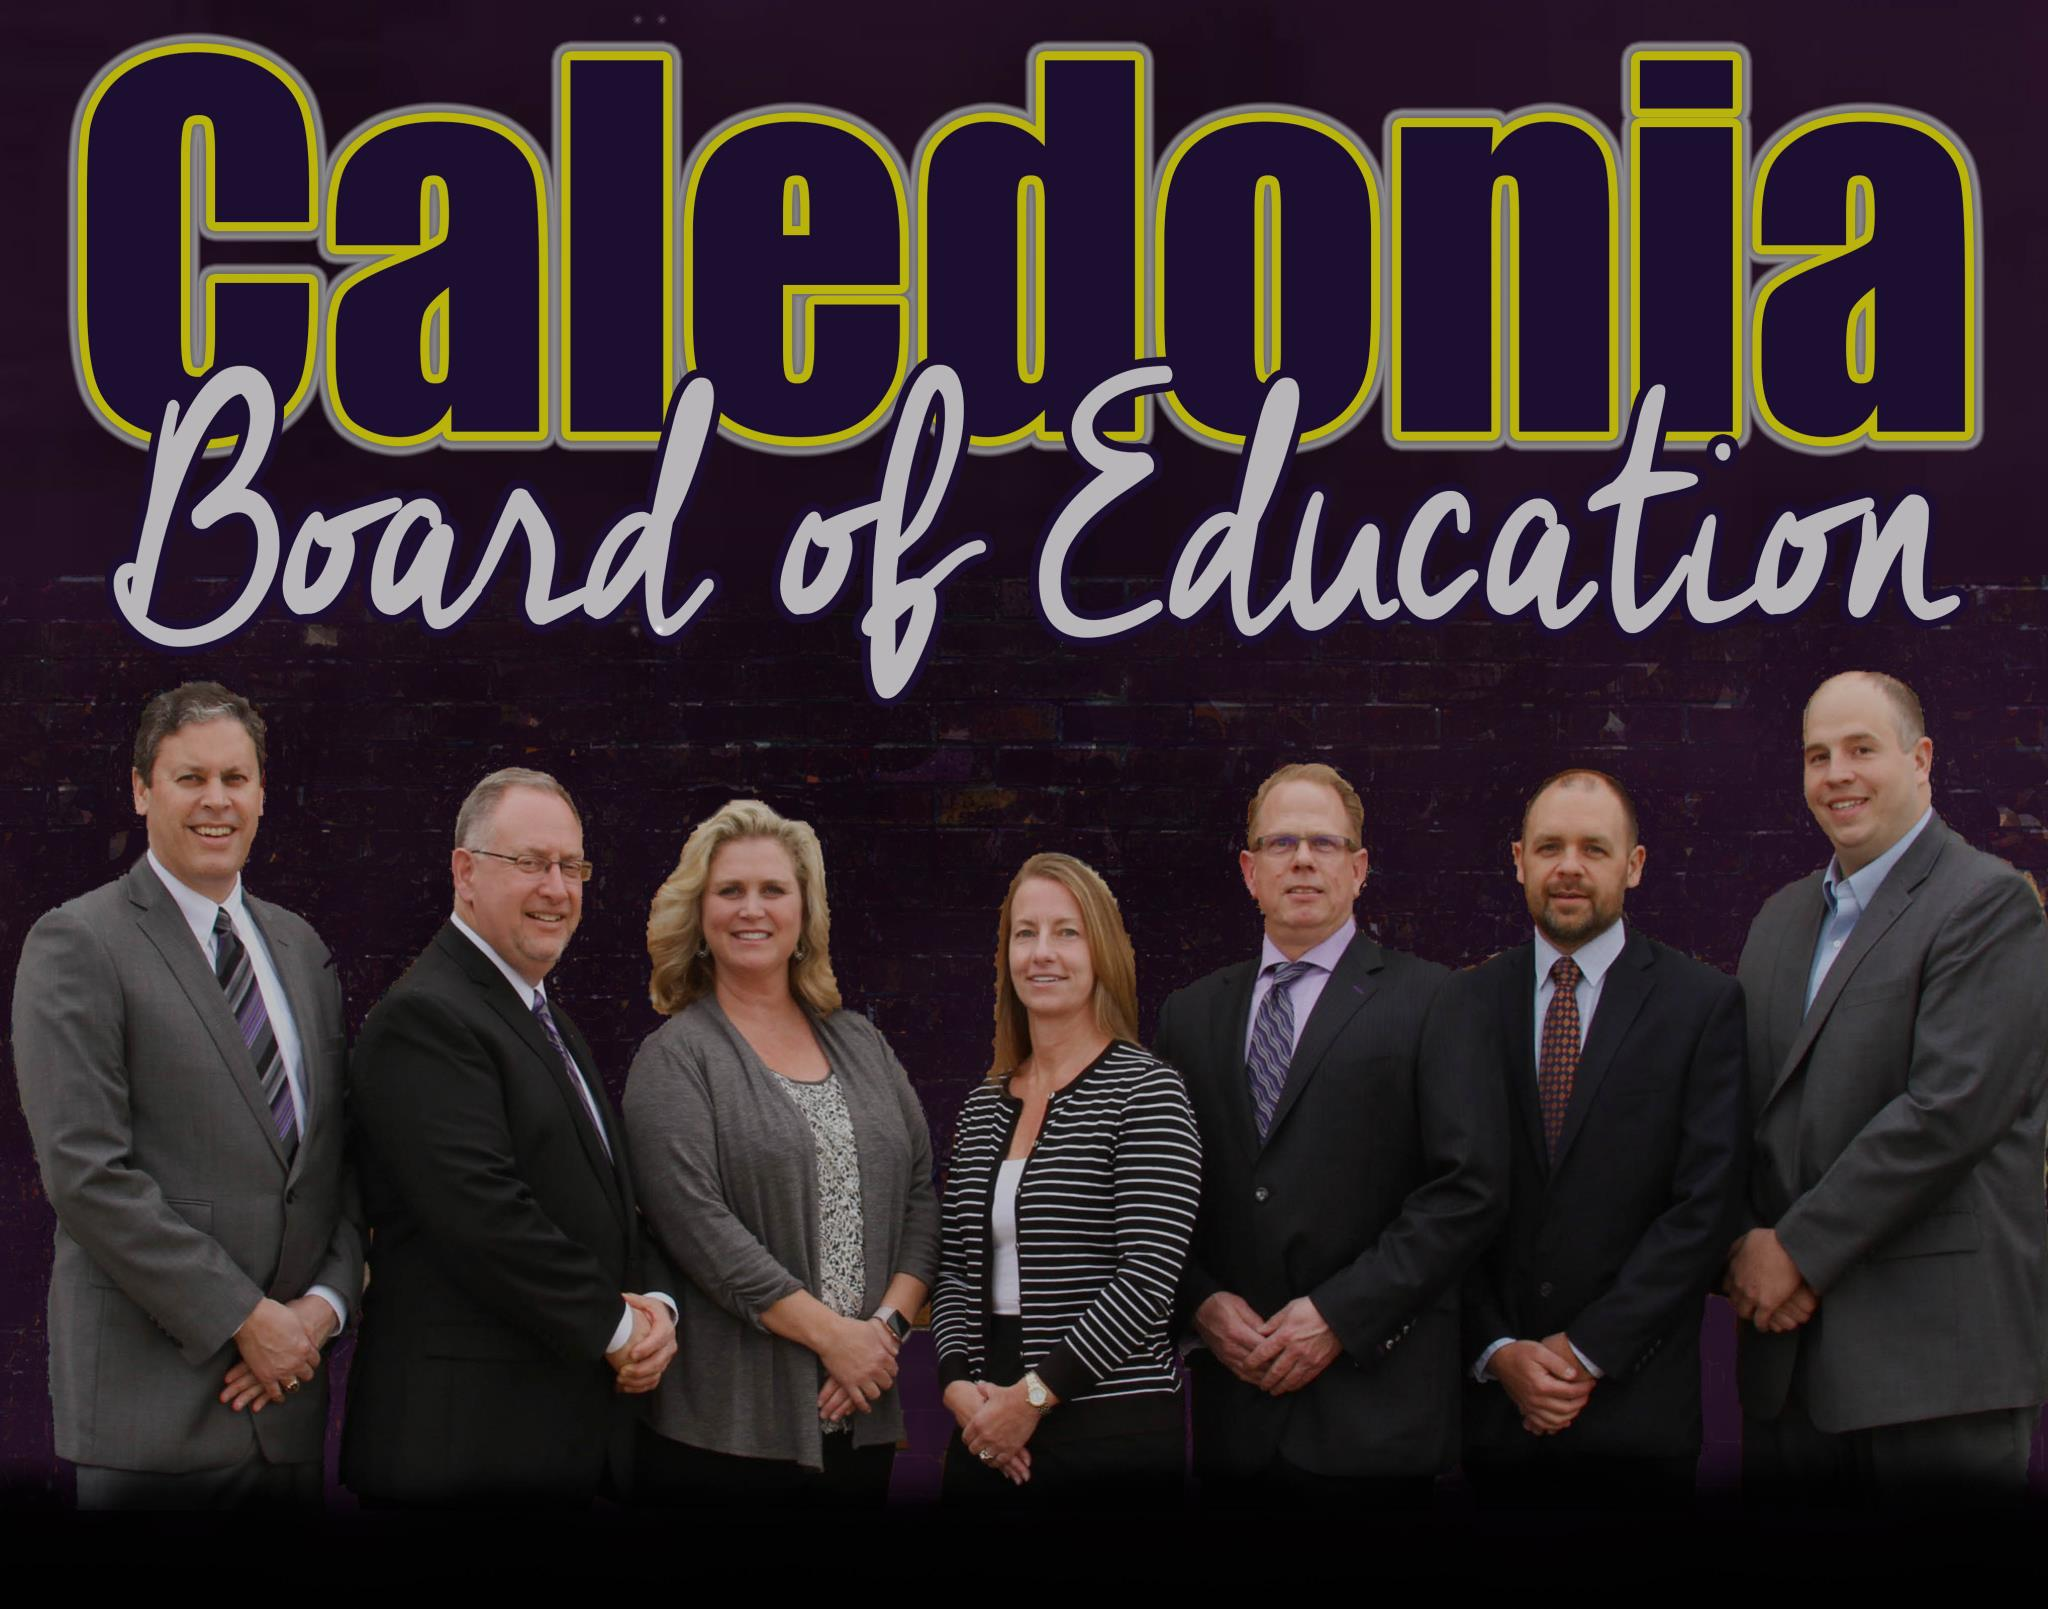 Group picture of the Caledonia Board of Education